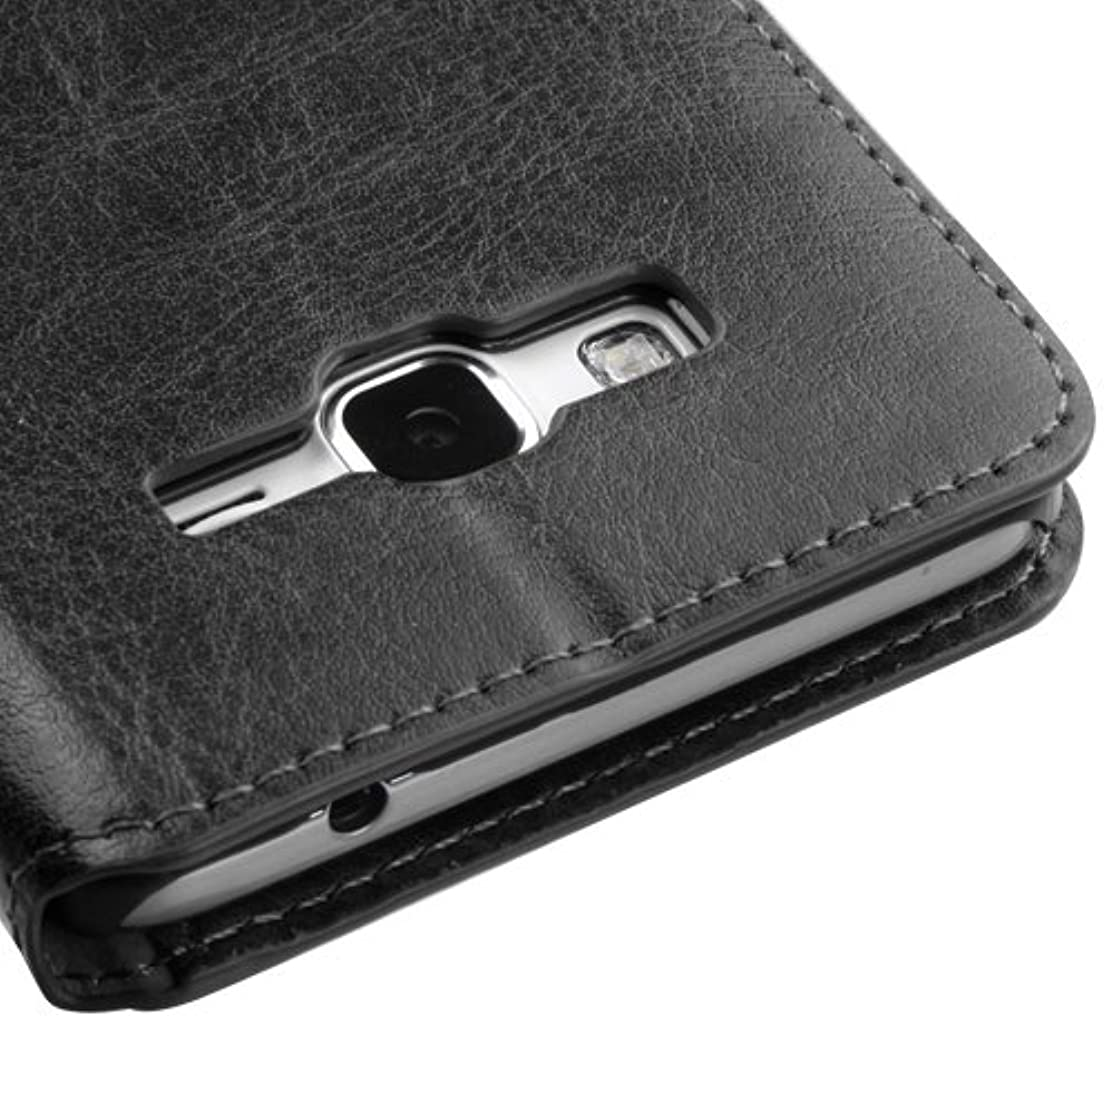 Wydan Case for Samsung Galaxy Grand Prime G530, Go Prime, Grand Prime Plus - Credit Card Leather Wallet Style Case Cover - Black